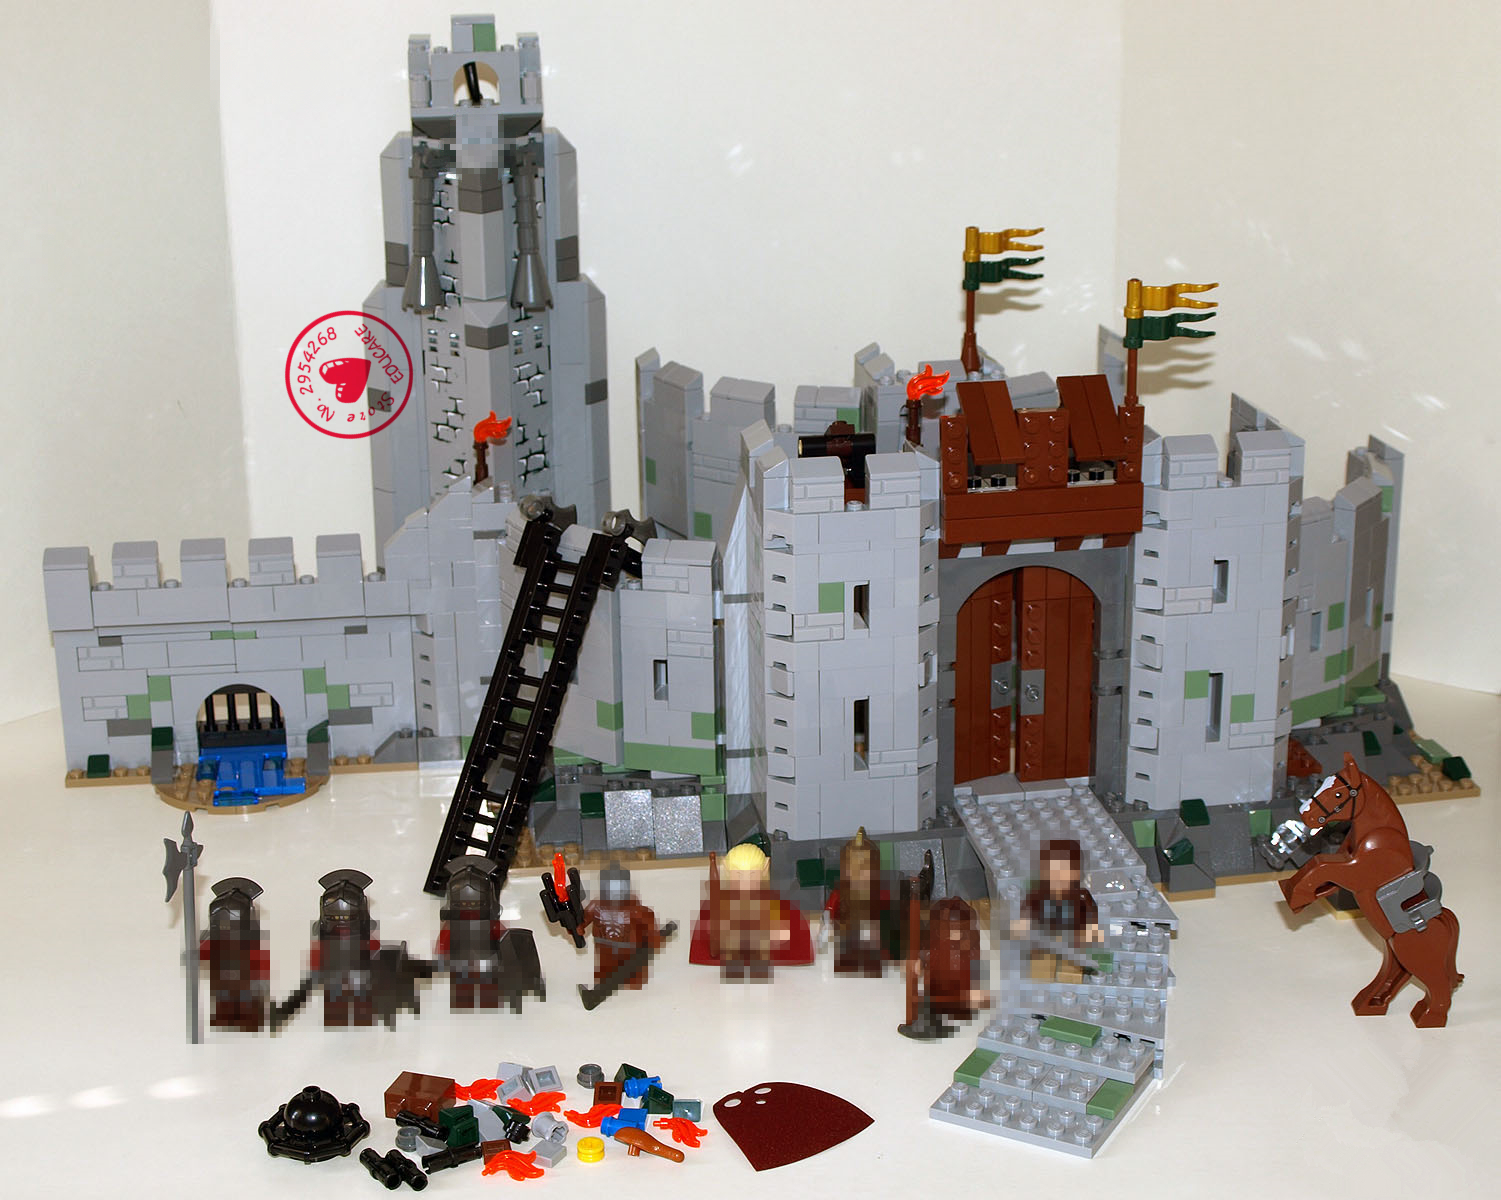 цена на New The Lord of the Rings Battle Of Helm' Deep fit legoings castle Lord military figures Building Block Bricks 9474 gift kid toy